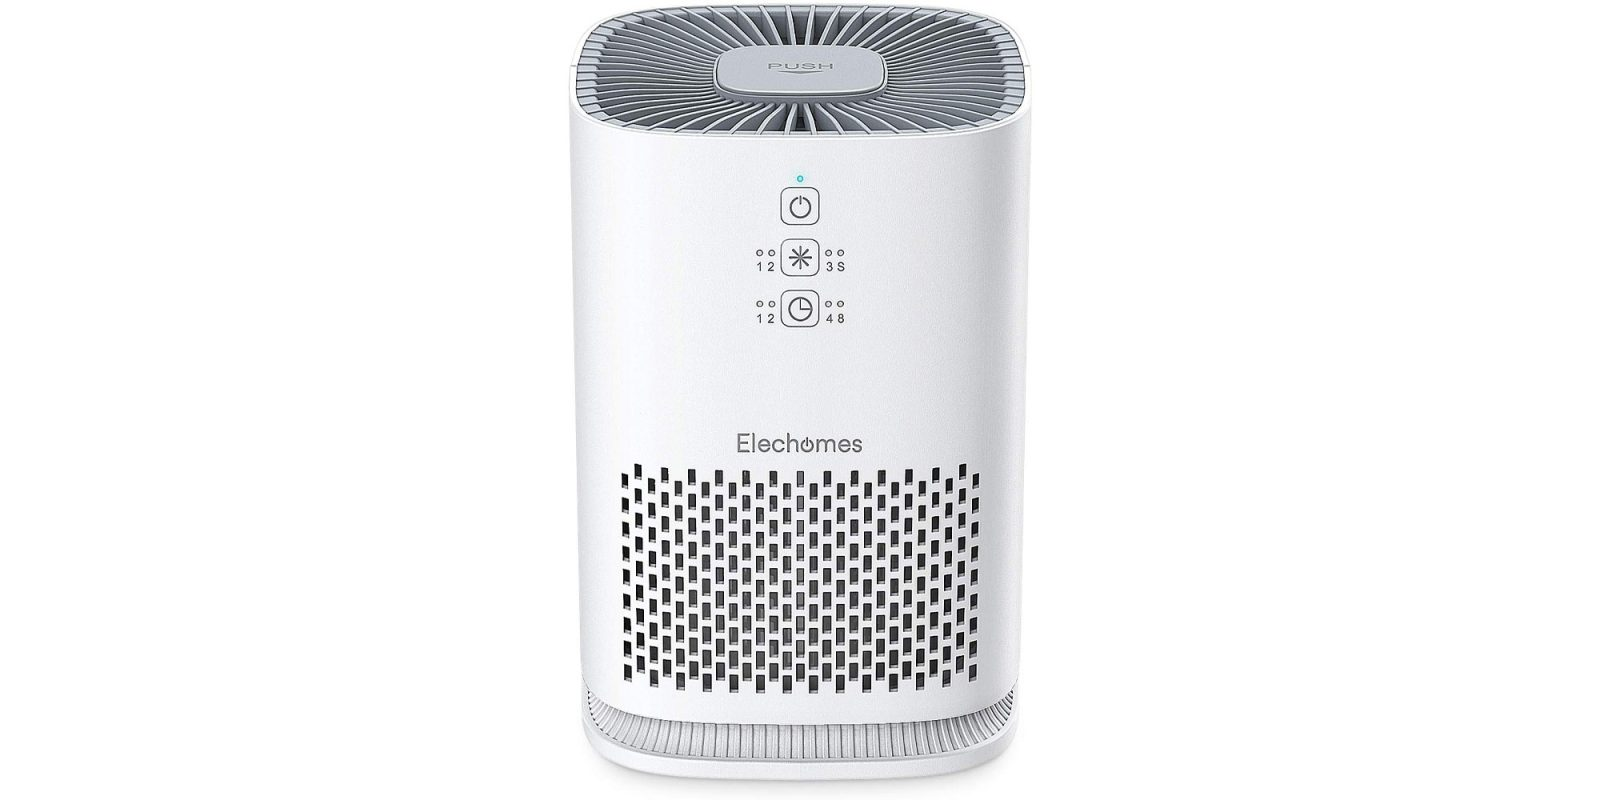 Prep for spring allergies with this HEPA air purifier at $35 (50% off)